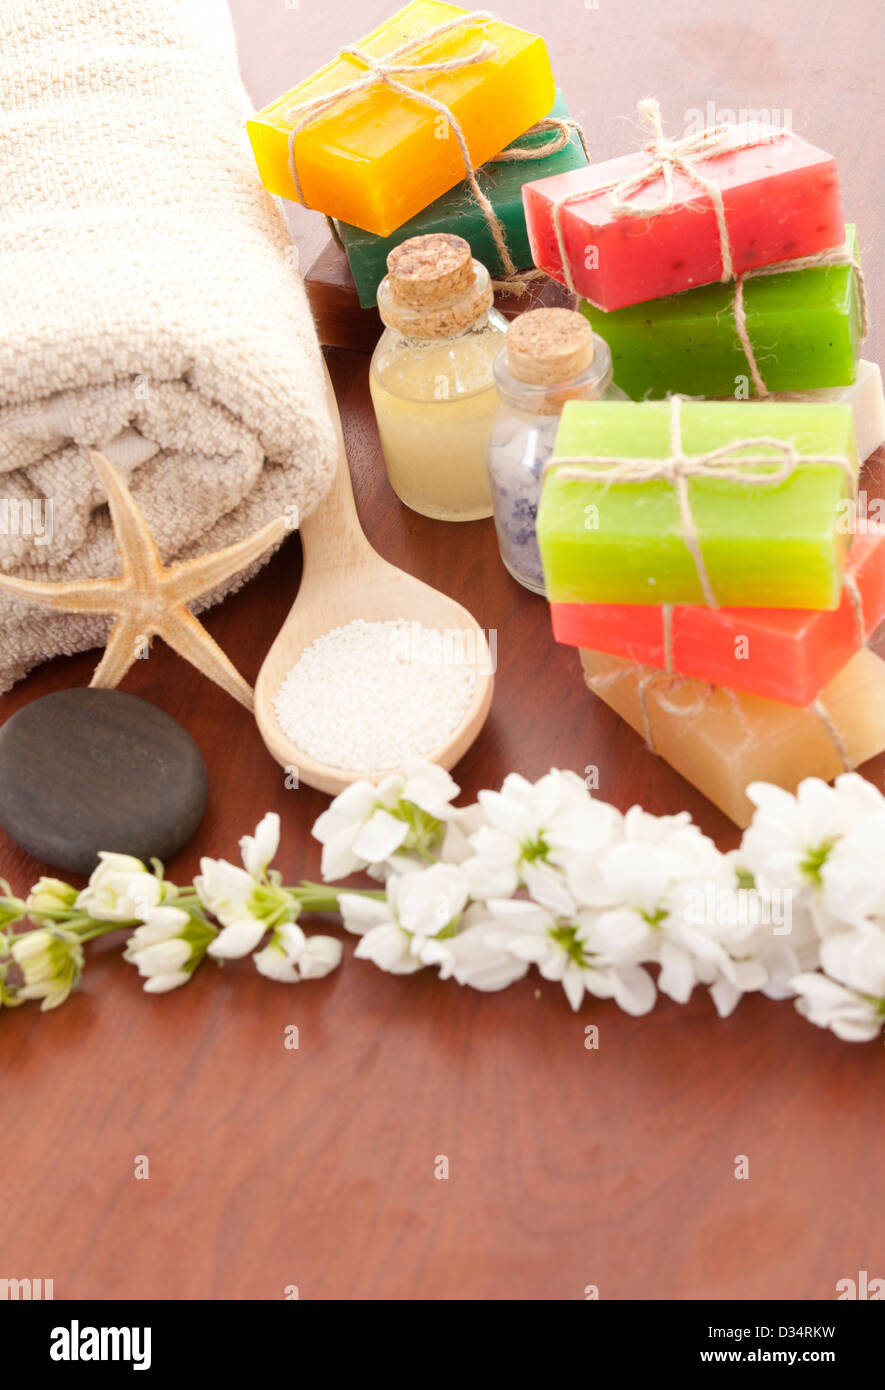 Handmade Soap closeup.Spa products - Stock Image